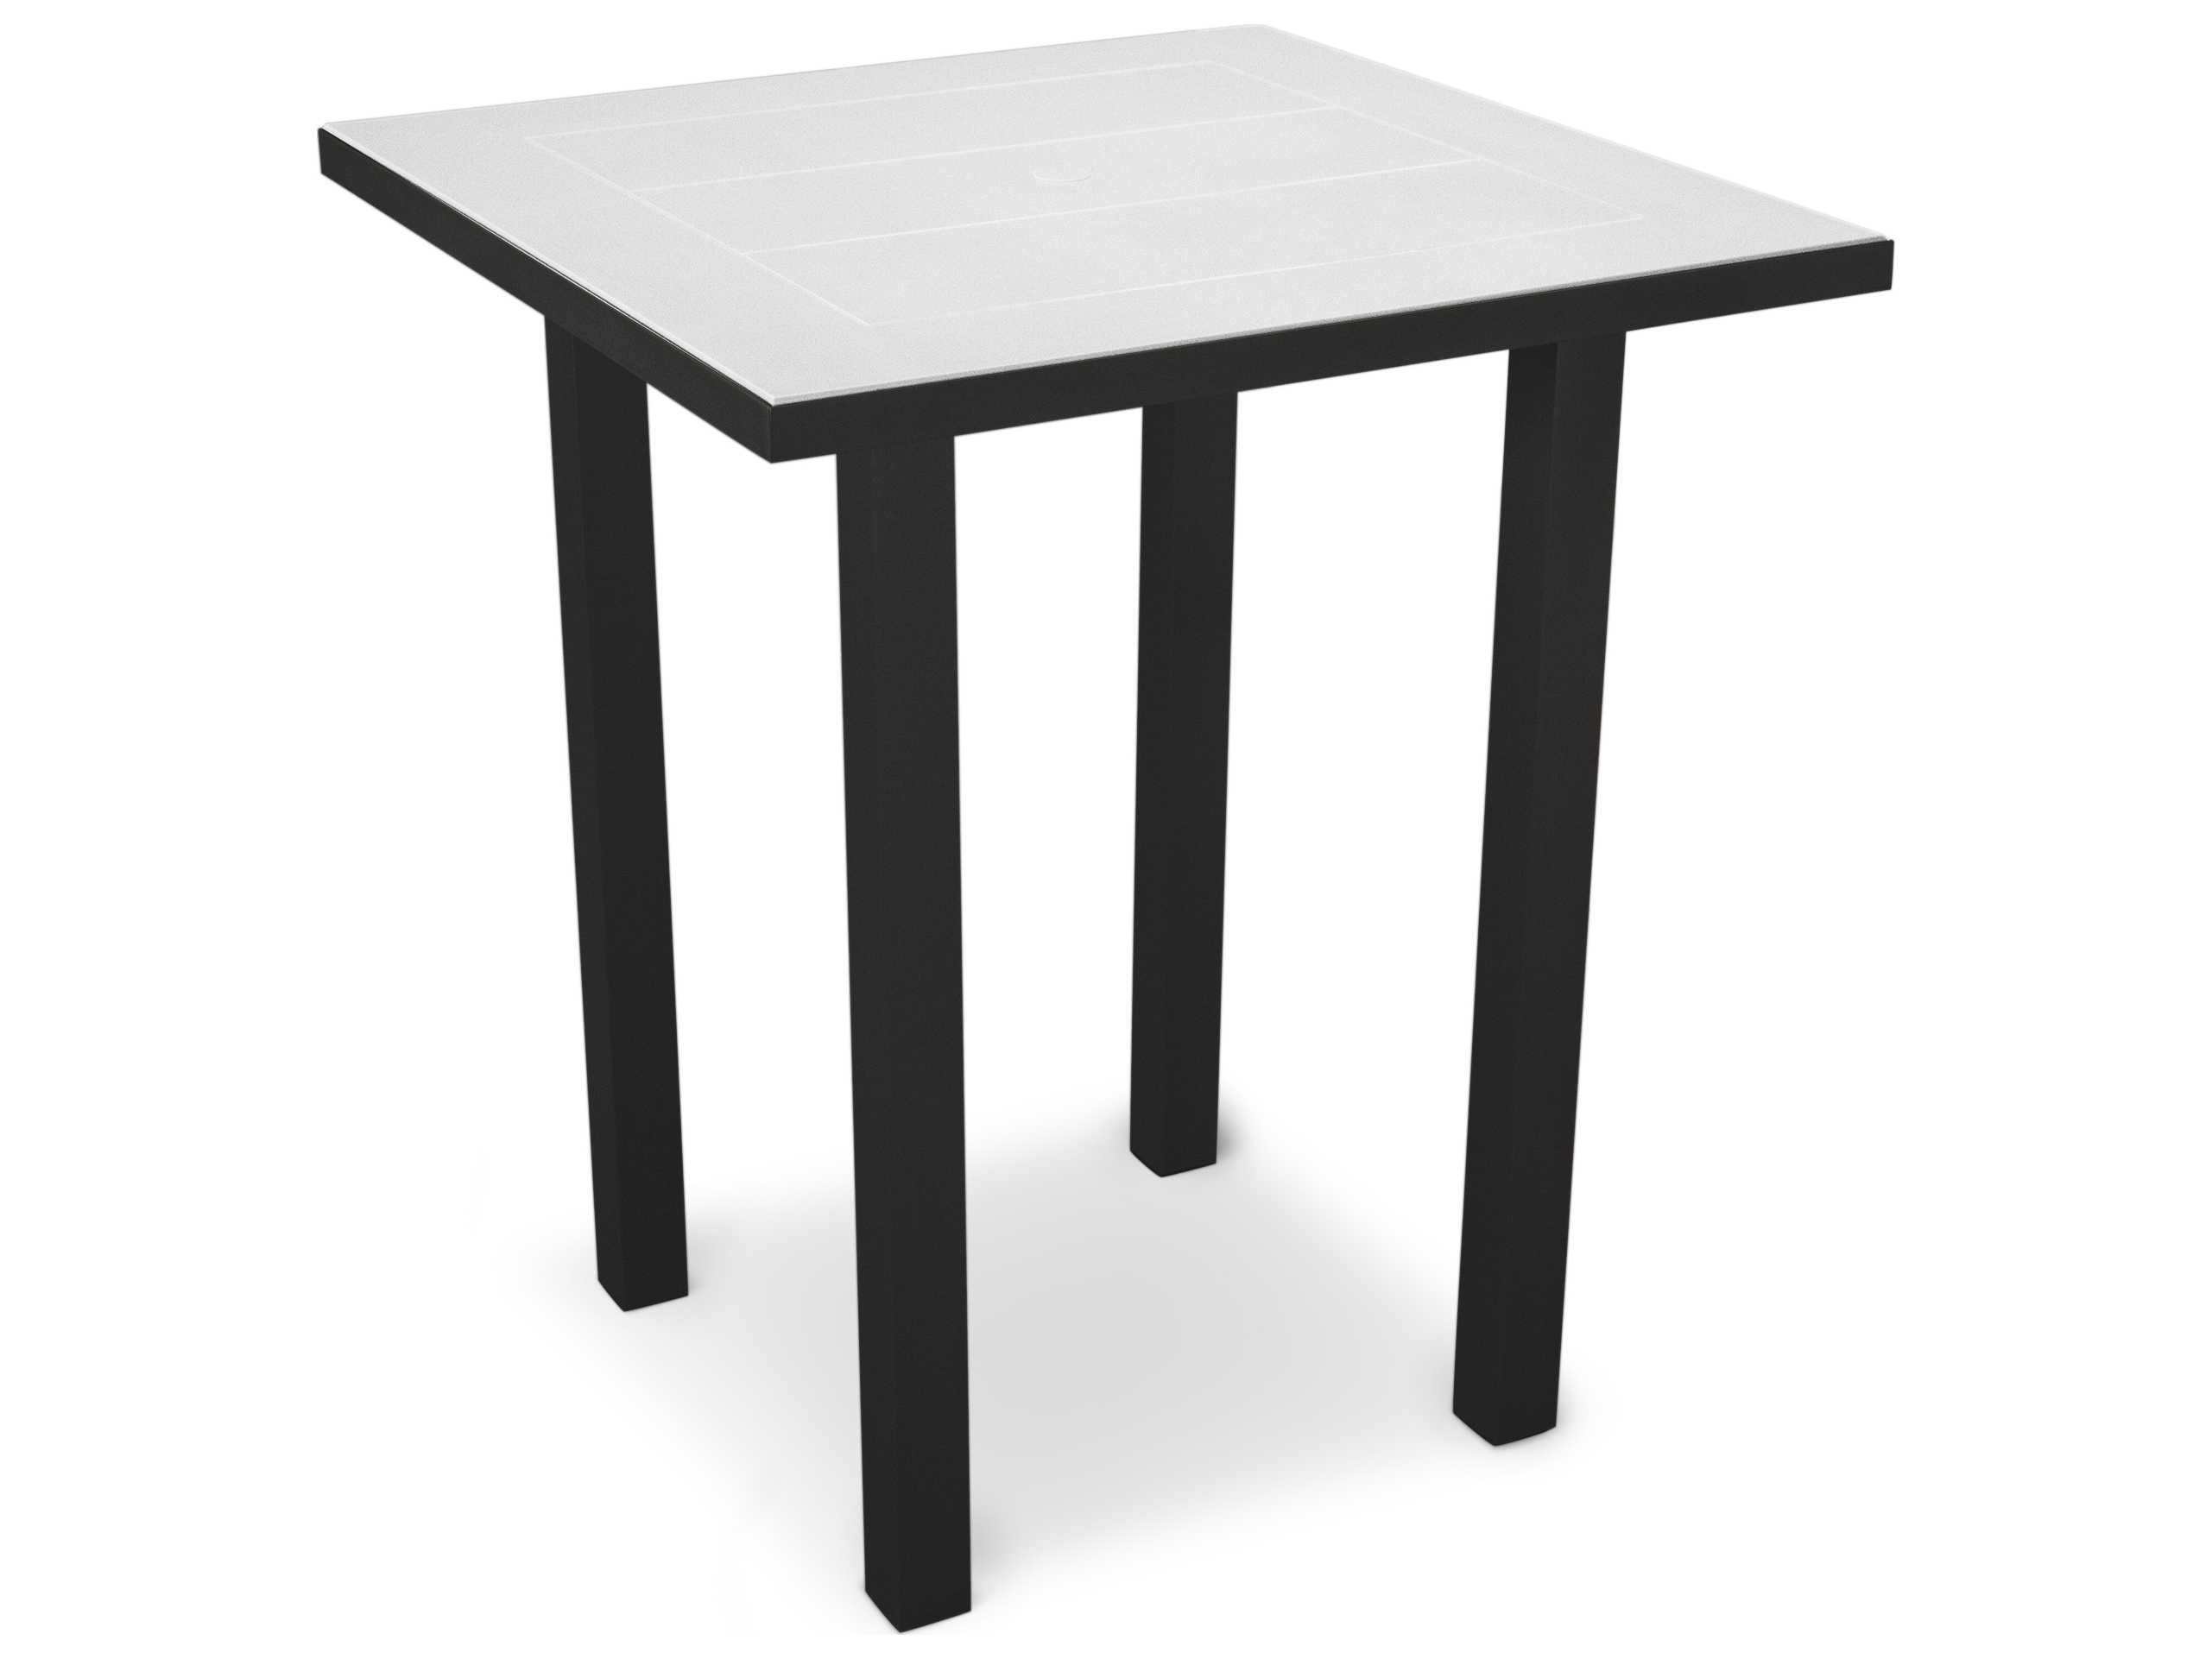 polywood euro solid36 square aluminum bar table pwat122. Black Bedroom Furniture Sets. Home Design Ideas